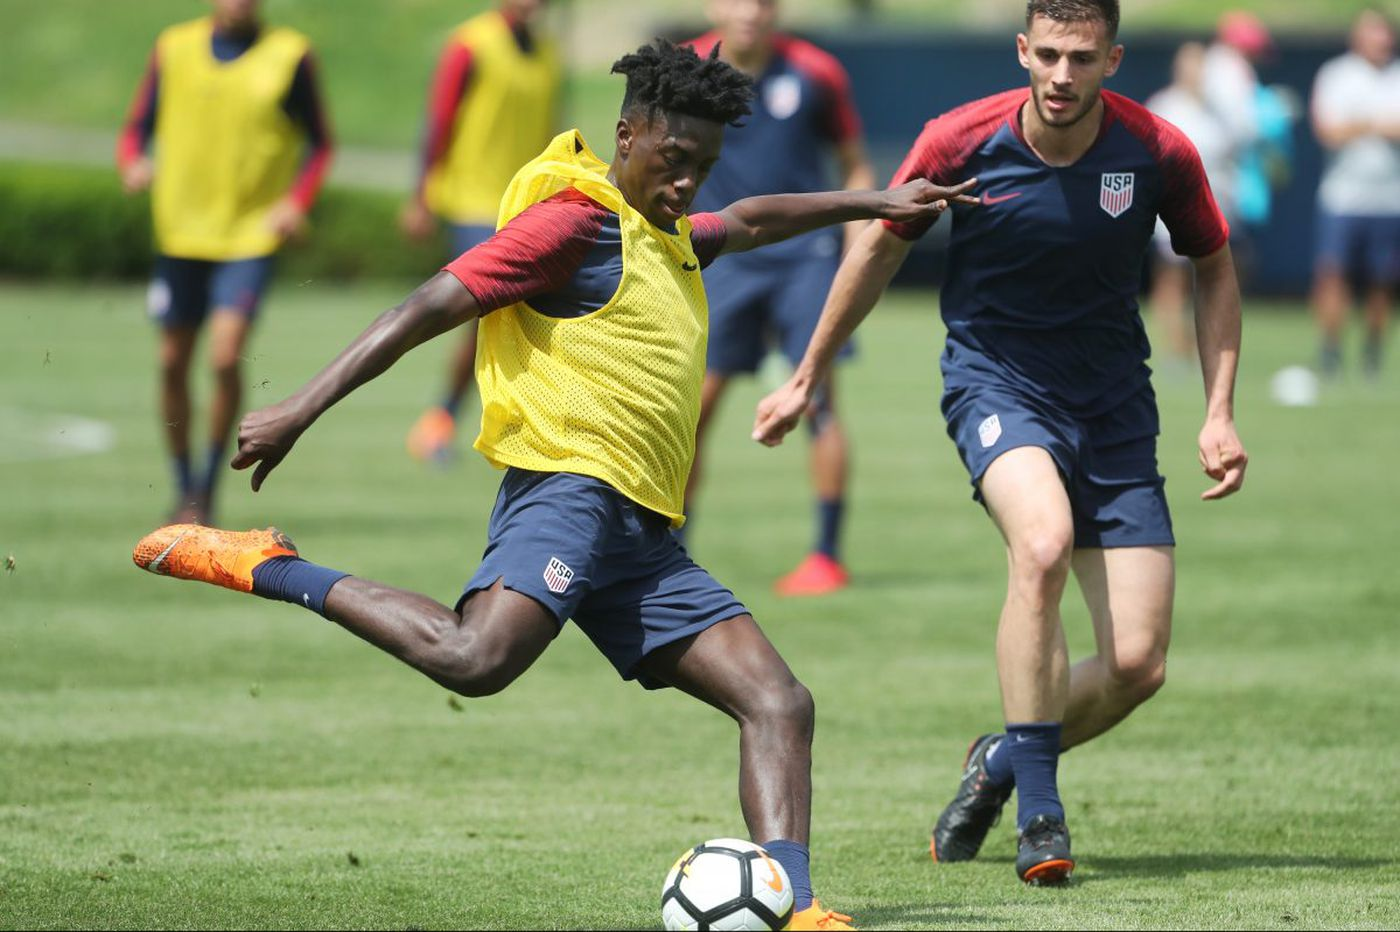 Tim Weah has national team star potential - and not just because of his famous father